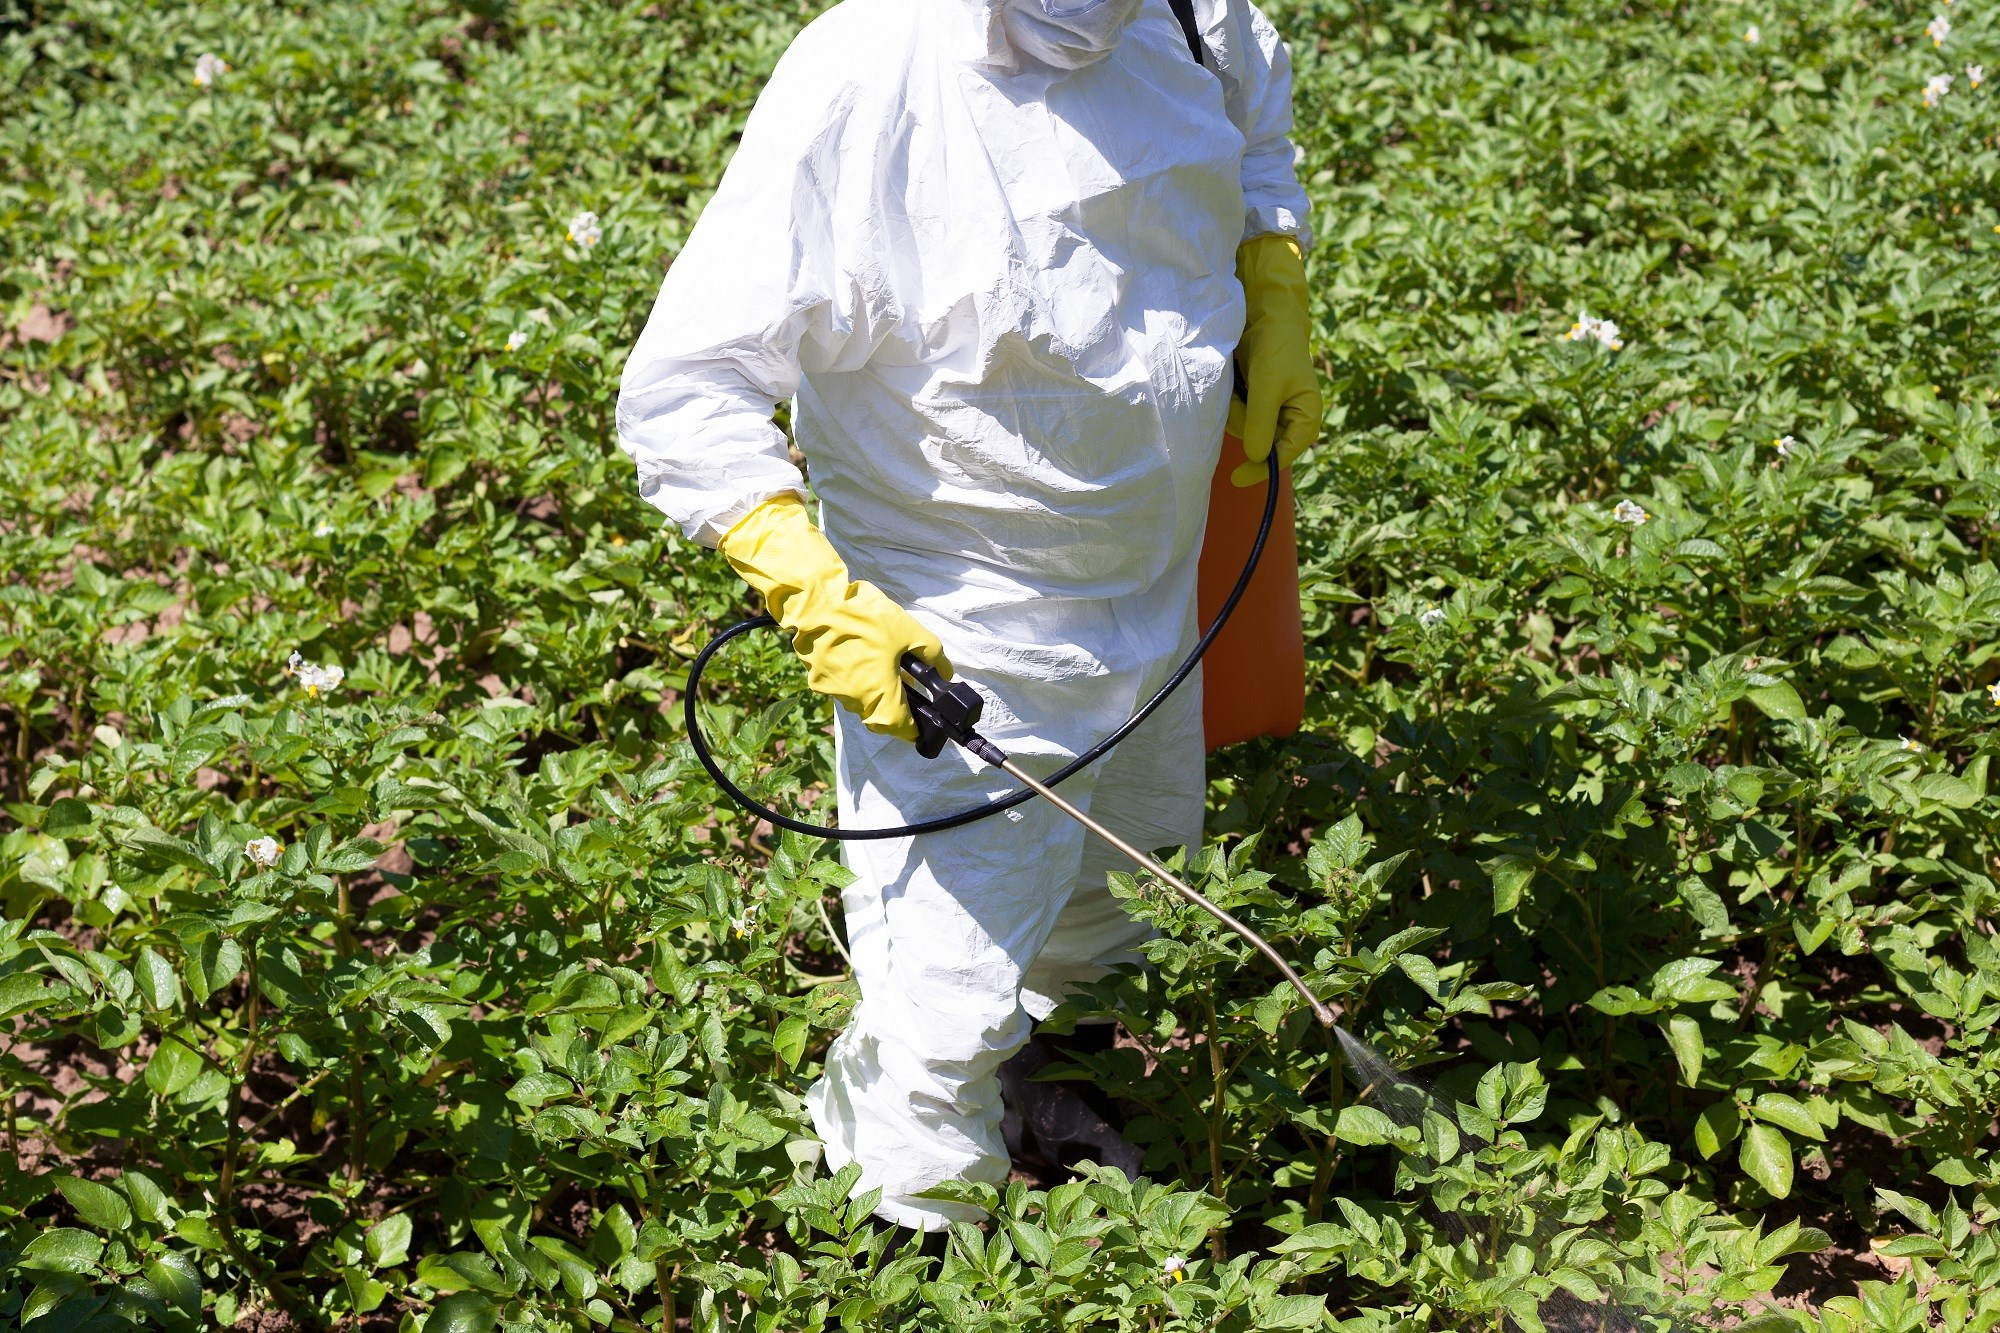 Occupational Exposure to Metals, Pesticides Tied to CVD in Hispanics